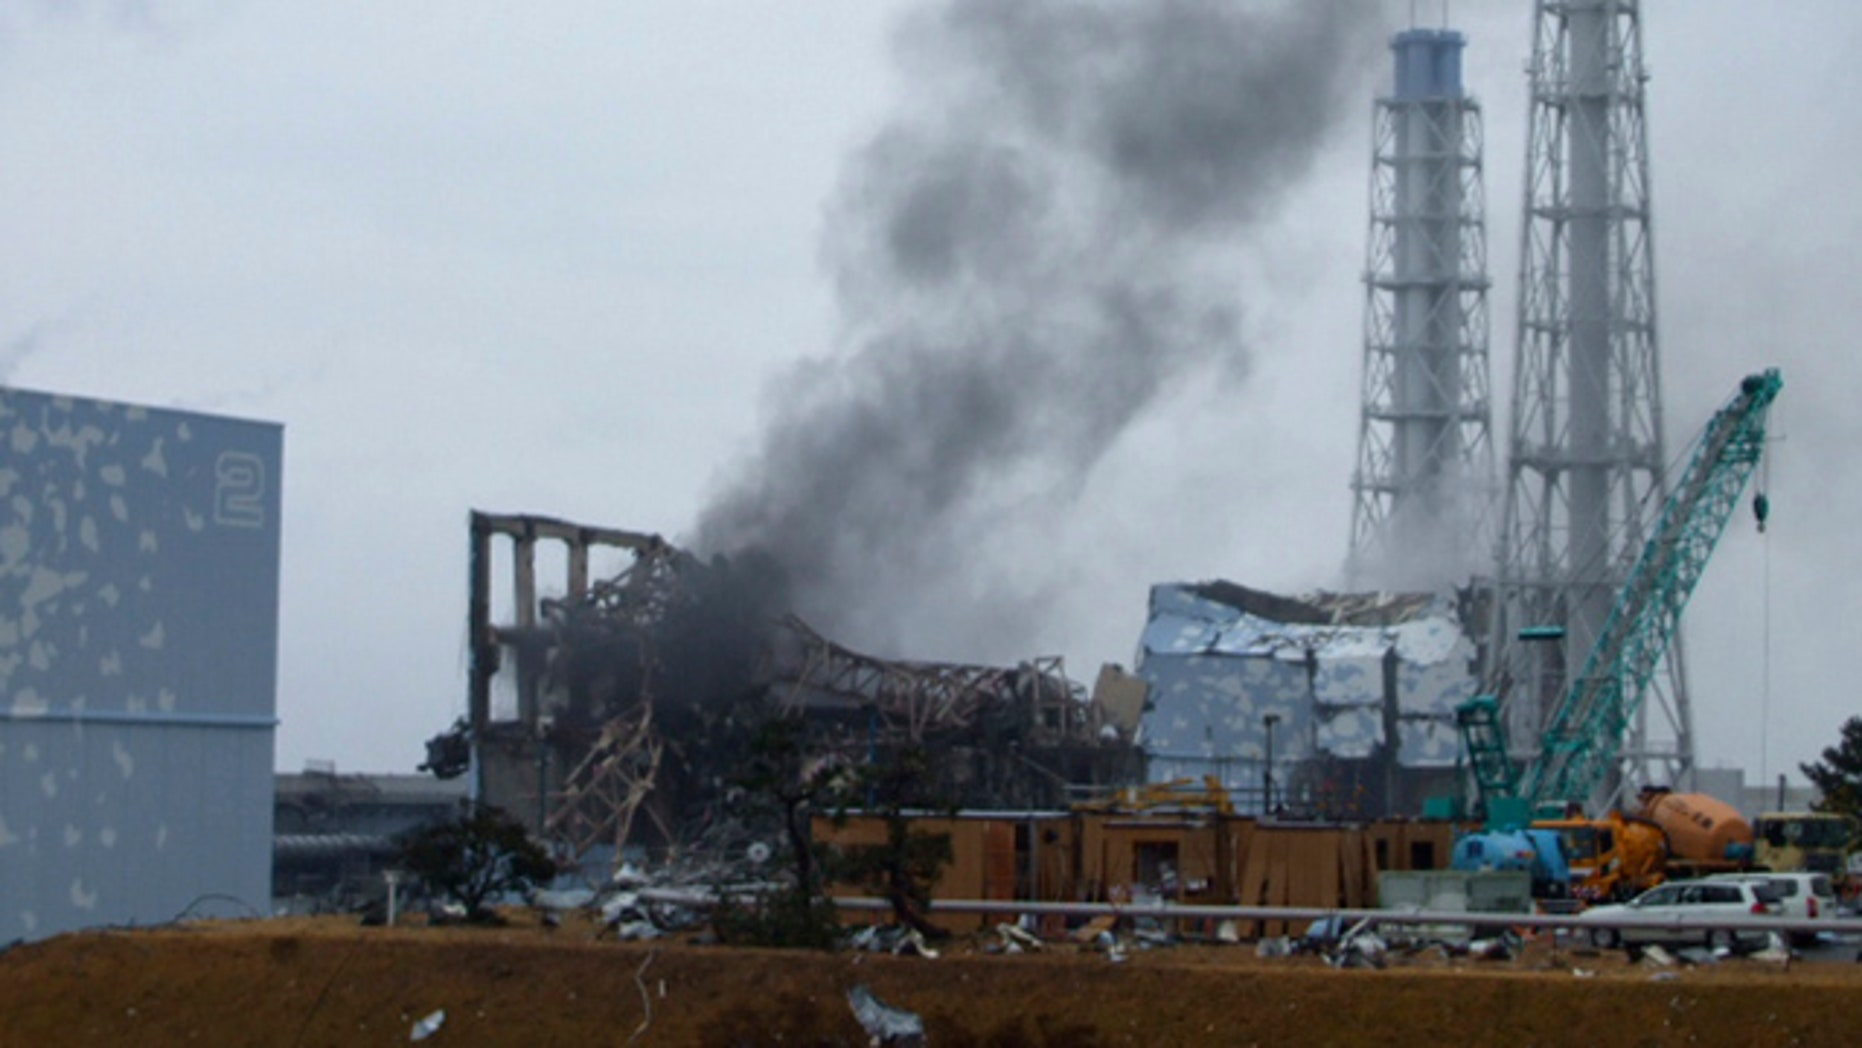 March 21: In this photo released by Tokyo Electric Power Co. (TEPCO), gray smoke rises from Unit 3 of the tsunami-stricken Fukushima Dai-ichi nuclear power plant in Okumamachi, Fukushima Prefecture, Japan.